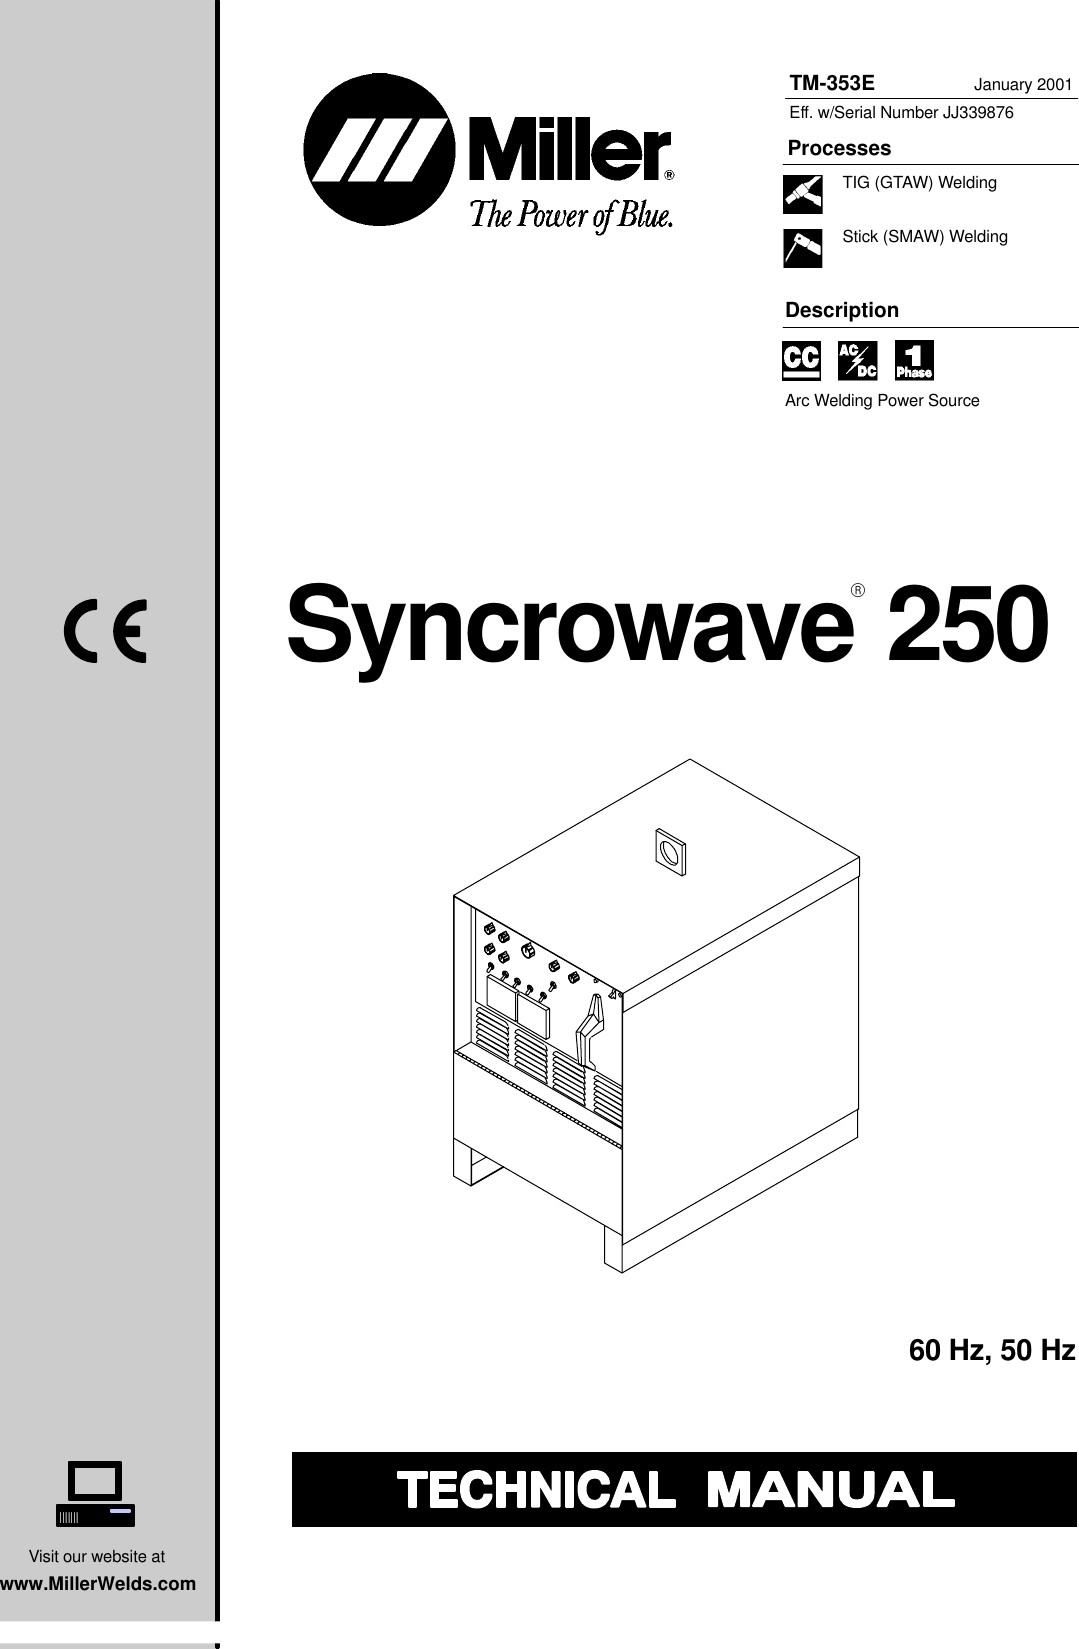 Miller Electric Syncrowave 250 Technical Manual ManualsLib Makes It Easy To Find Manuals line